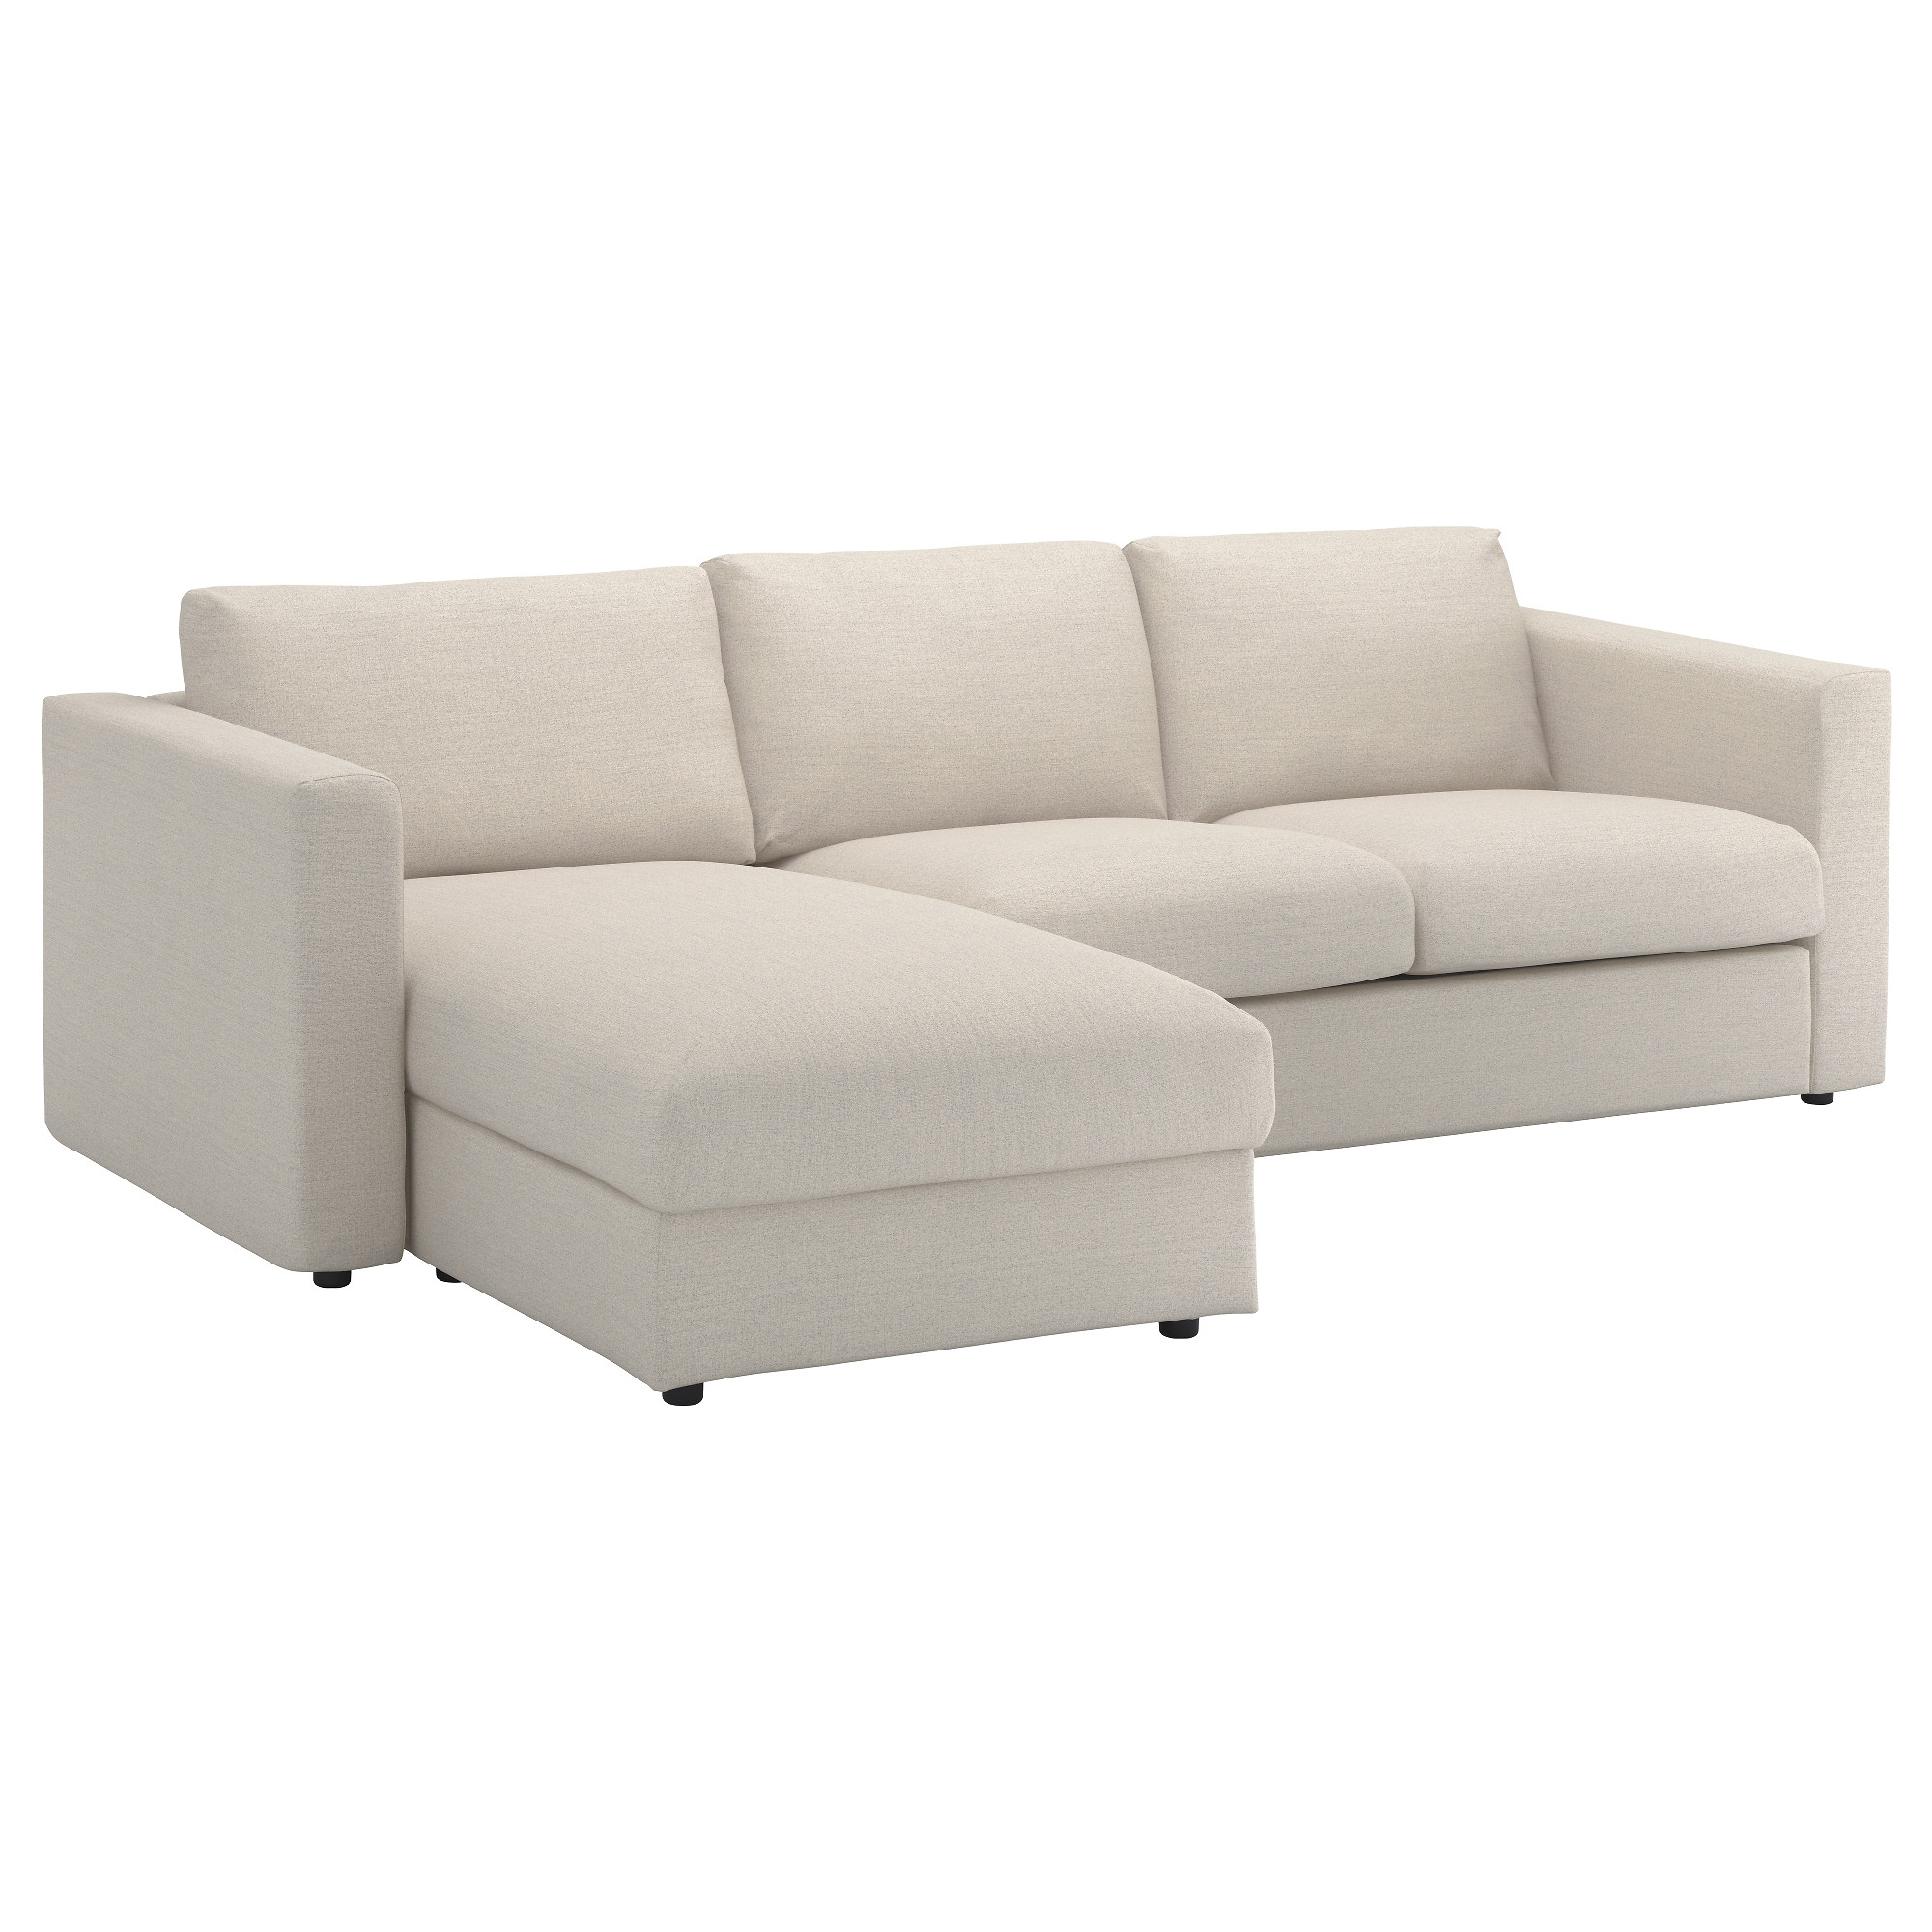 2018 Vimle Sofa – With Chaise/gunnared Beige – Ikea Within Ikea Chaise Sofas (View 2 of 15)